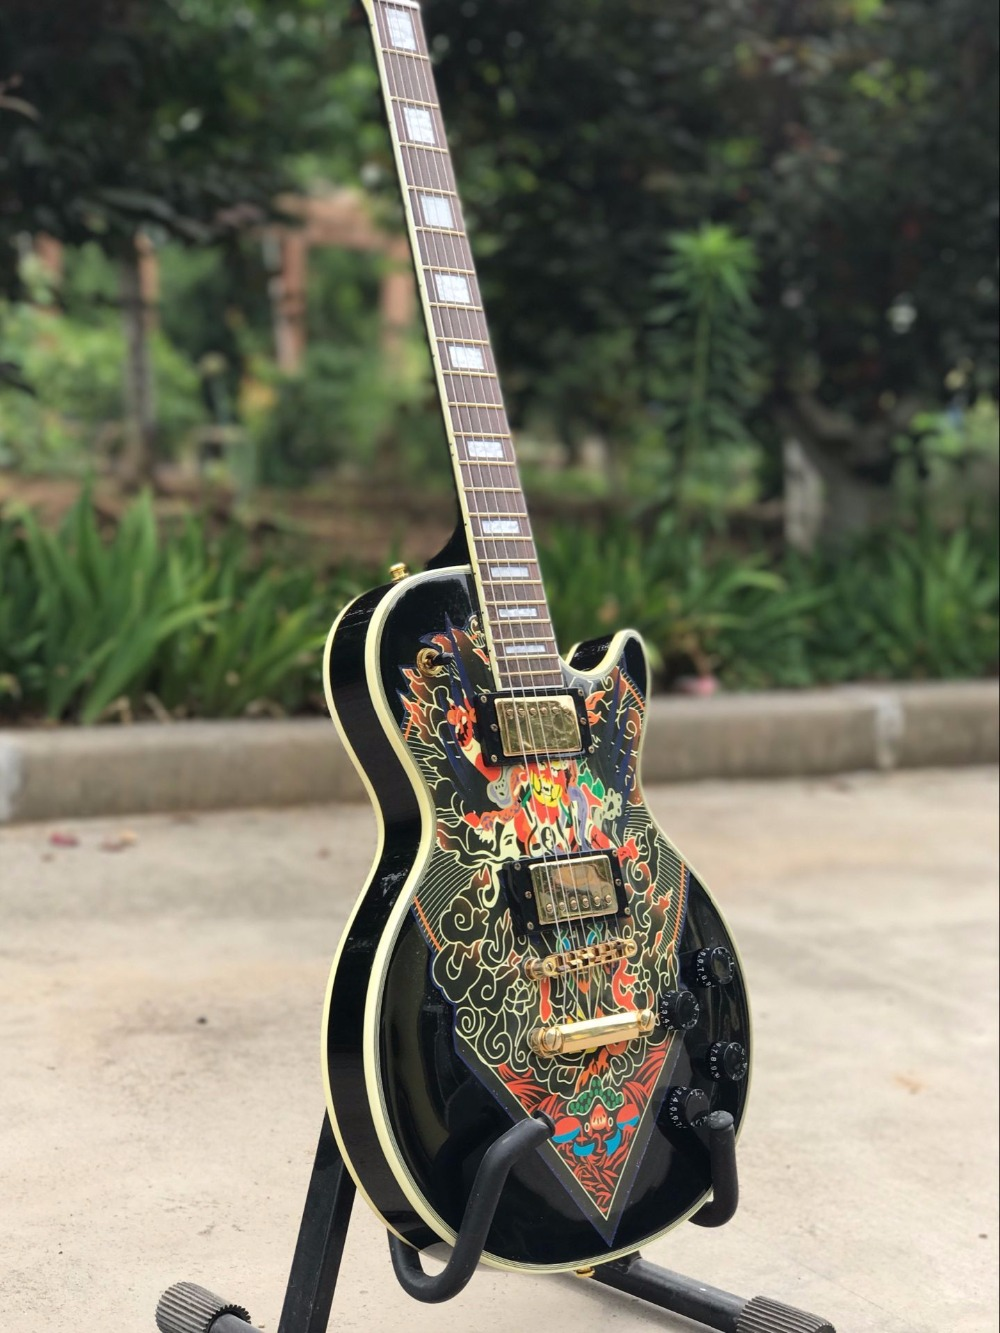 Vicers  High quality , electric guitar deliver EMS free shipping,Black large guitar china s es p guita wholesale newest explorer electric guitar high quality ems free shipping free shipping